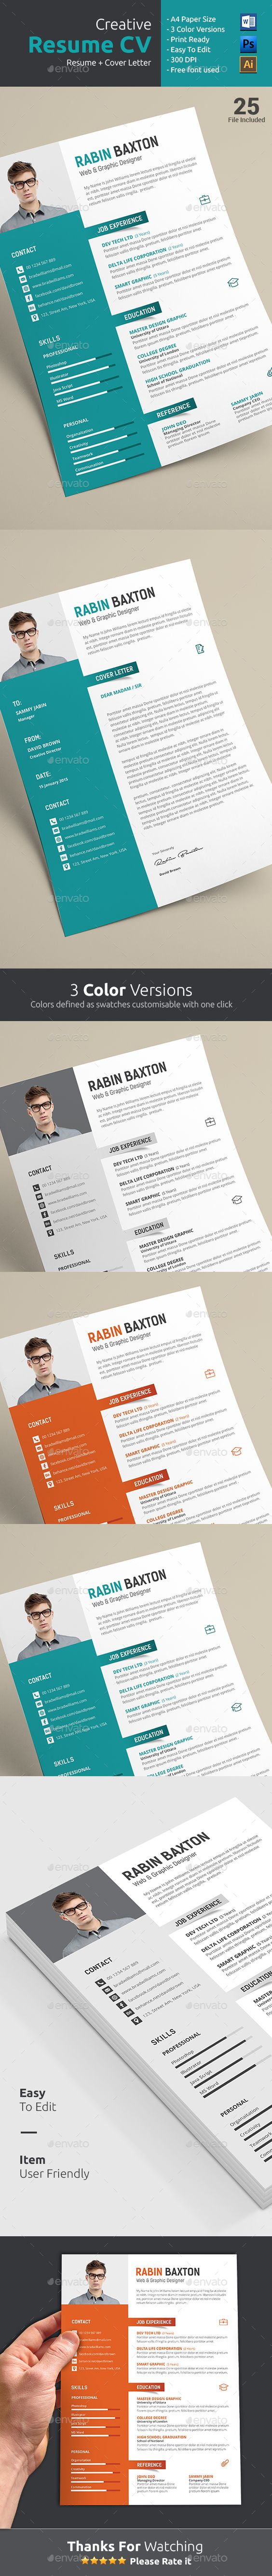 resume creative professional cv and graphics resume template psd ai design graphicriver net